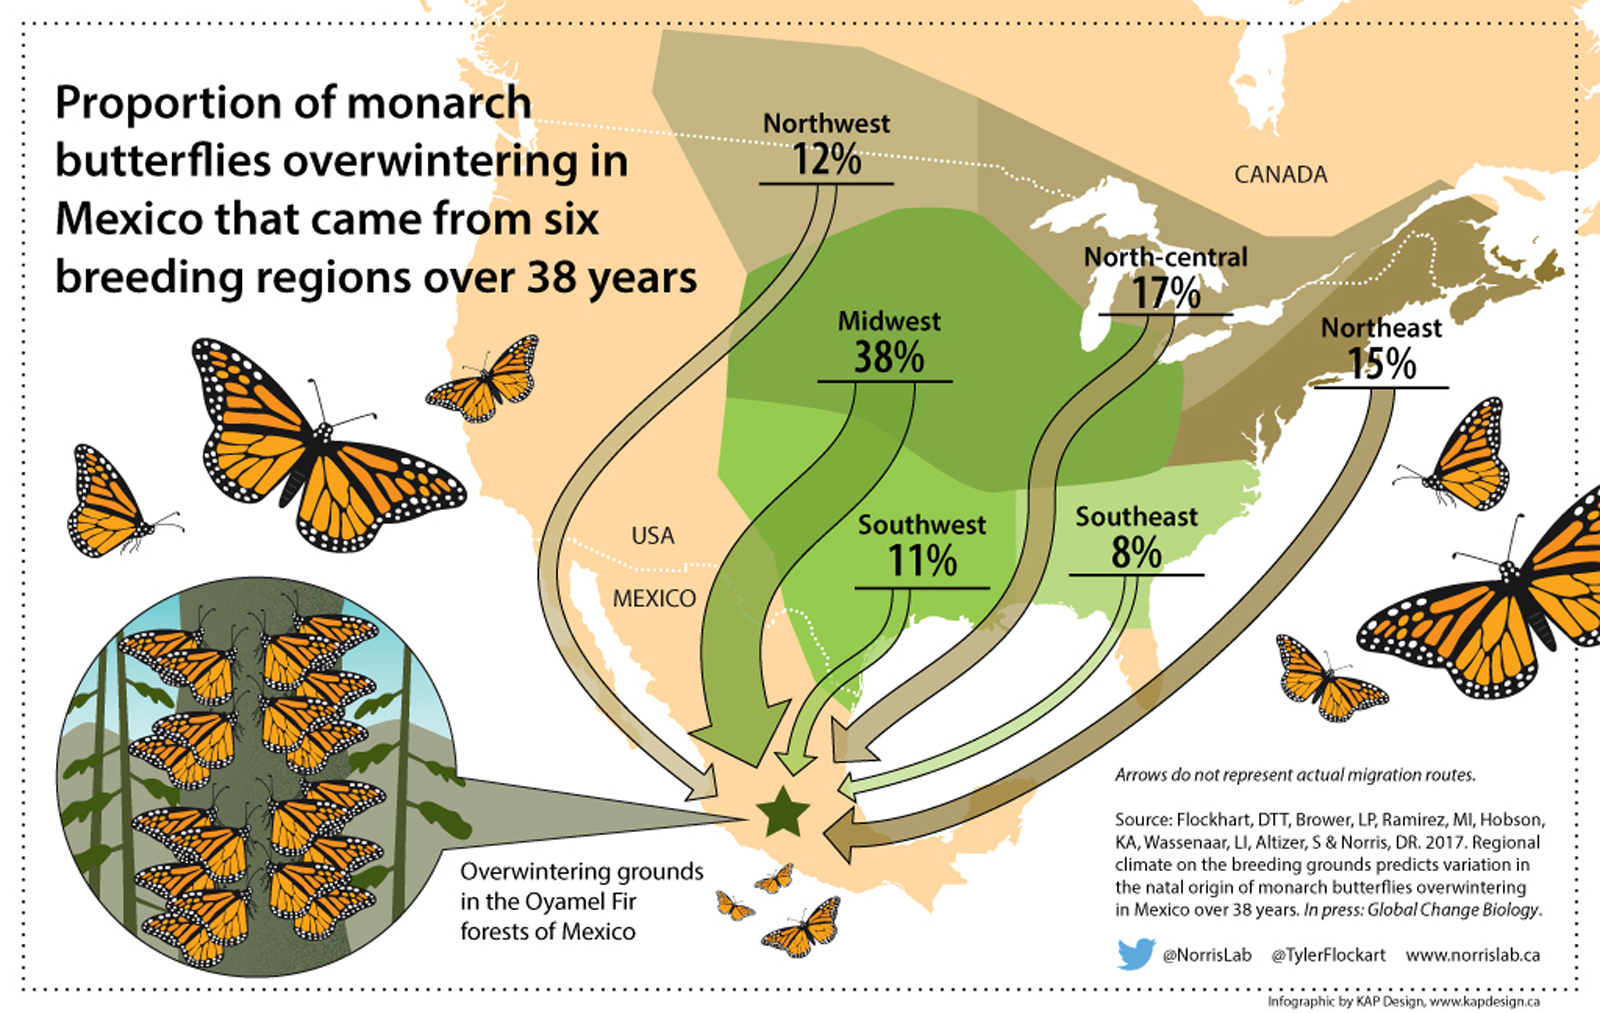 An infographic showing the breeding range of North American monarch butterflies